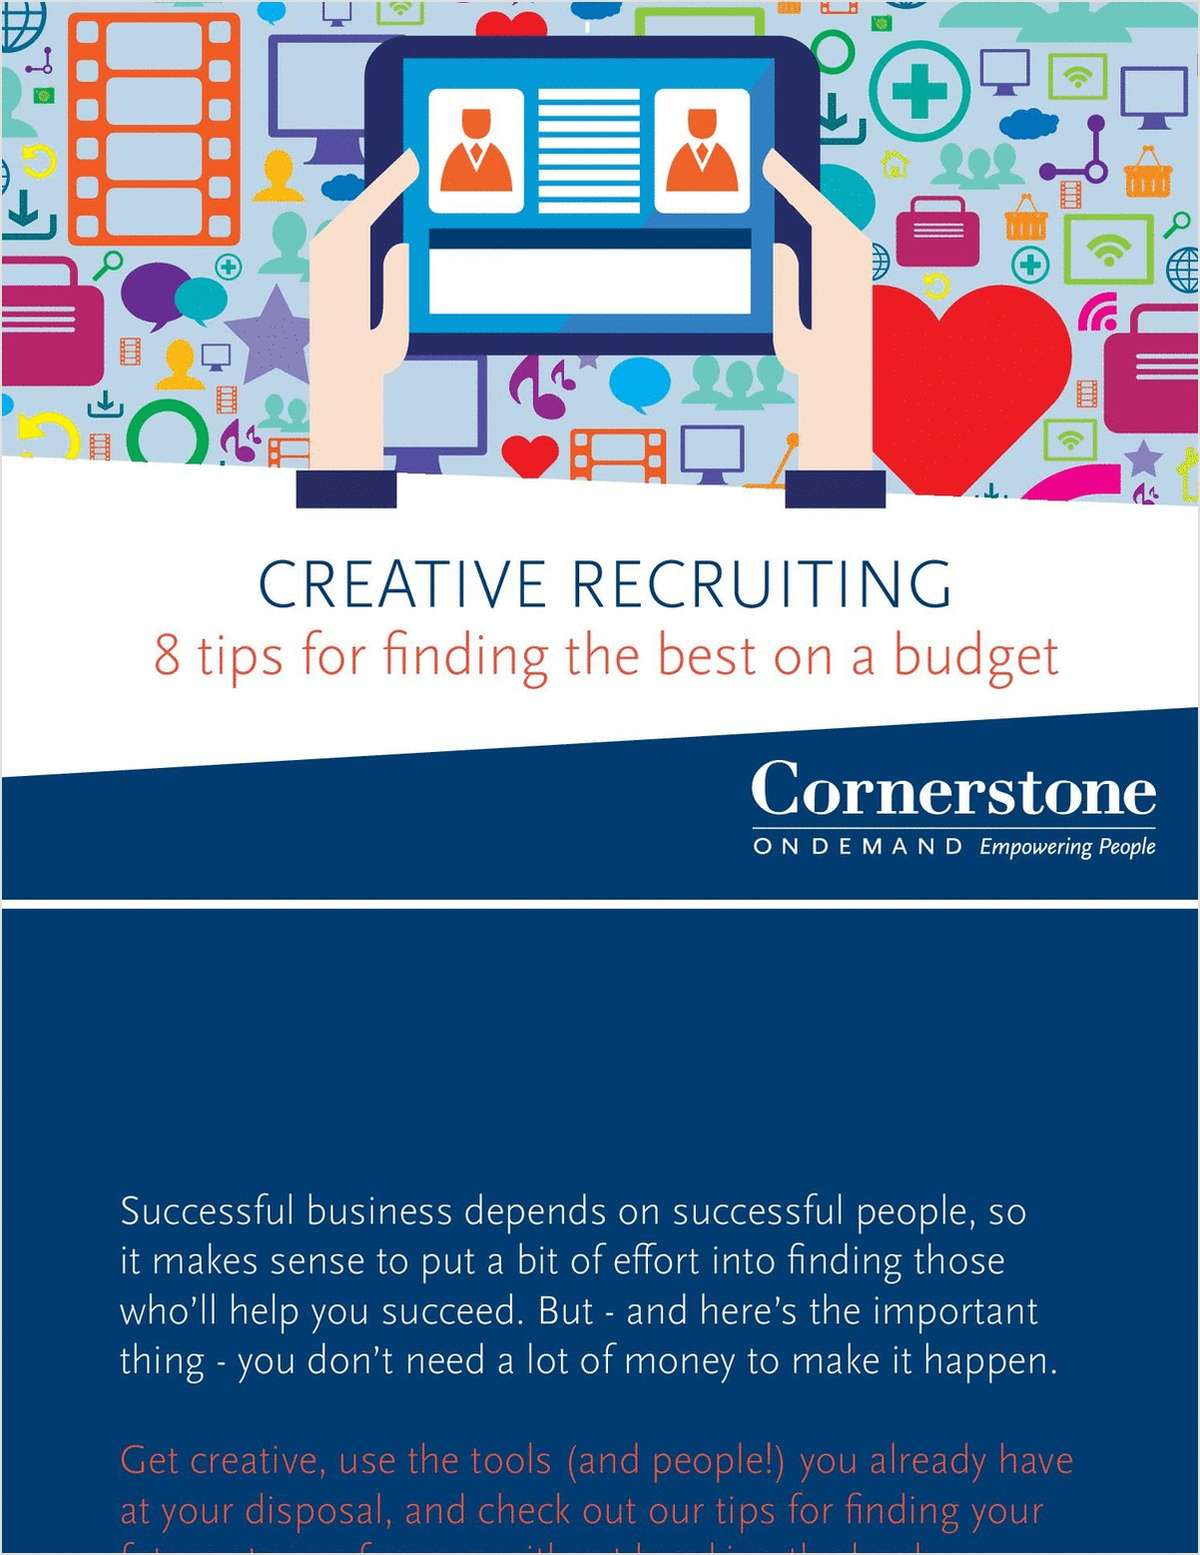 Creative Recruiting - 8 tips for finding the best on a budget